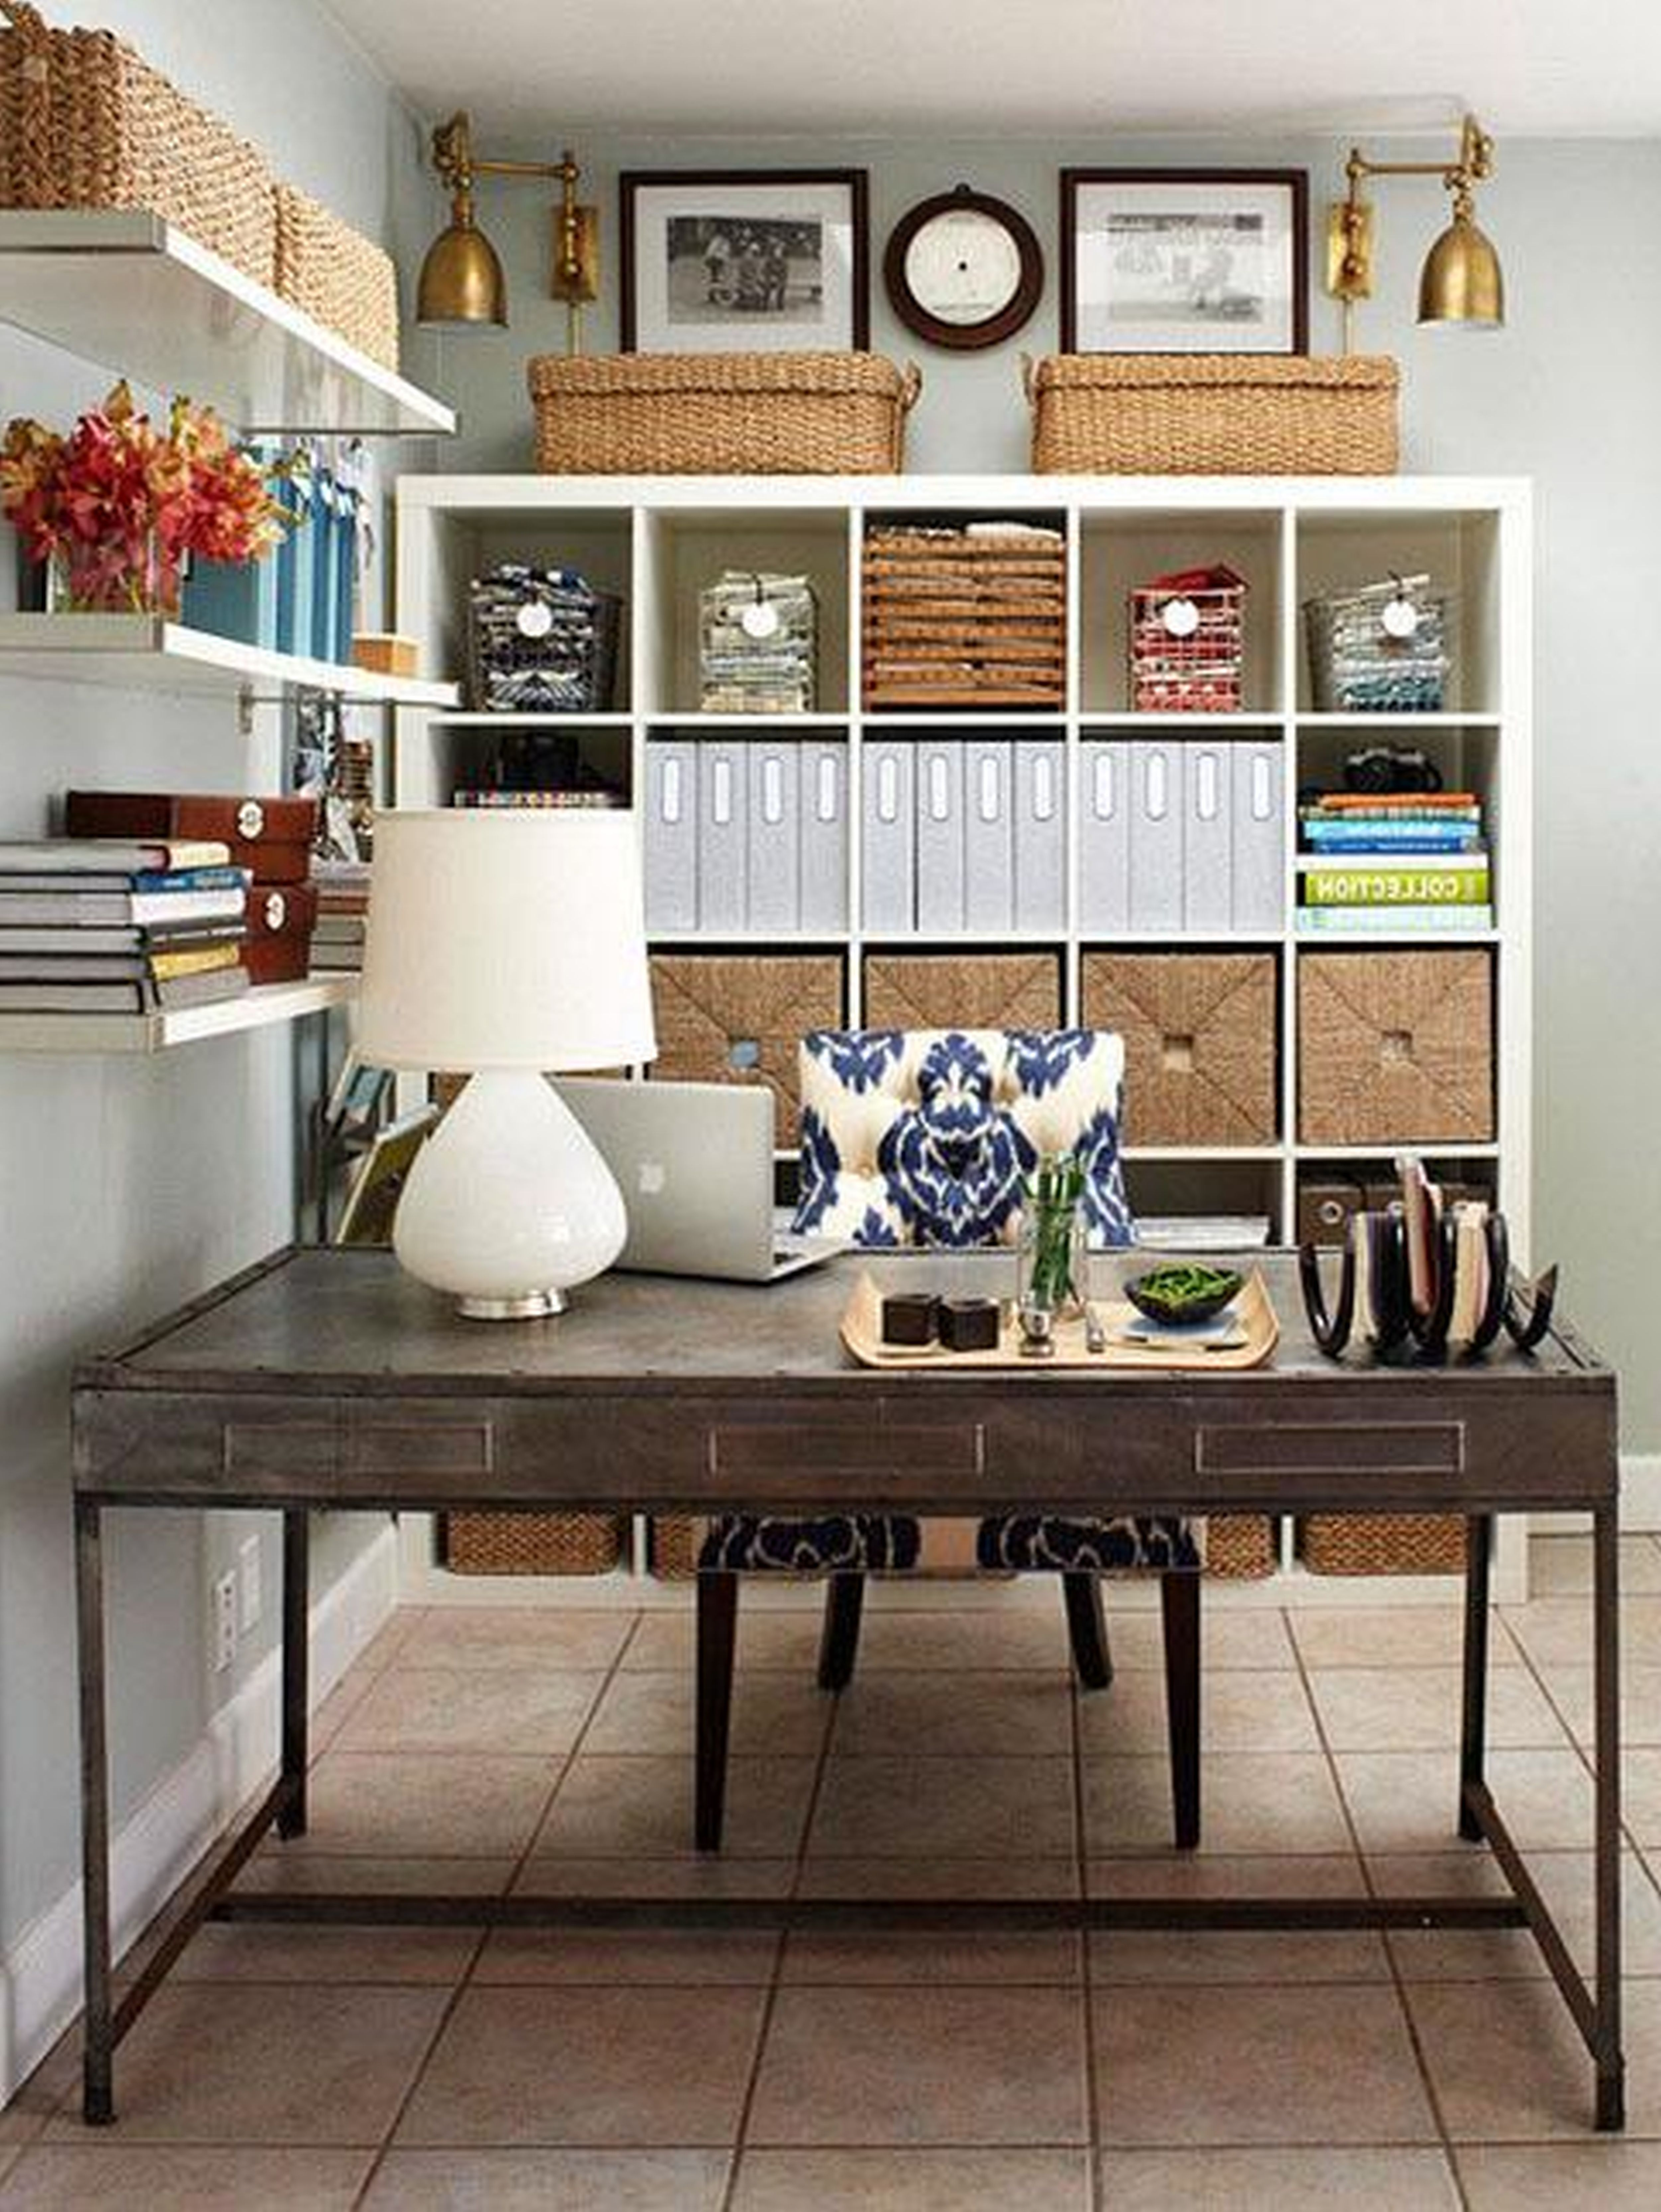 How To Design A Workspace At Home: Interior, Stylish Rectangular Reclaimed Wood Work Table With Fascinating White Lacquer Rack And